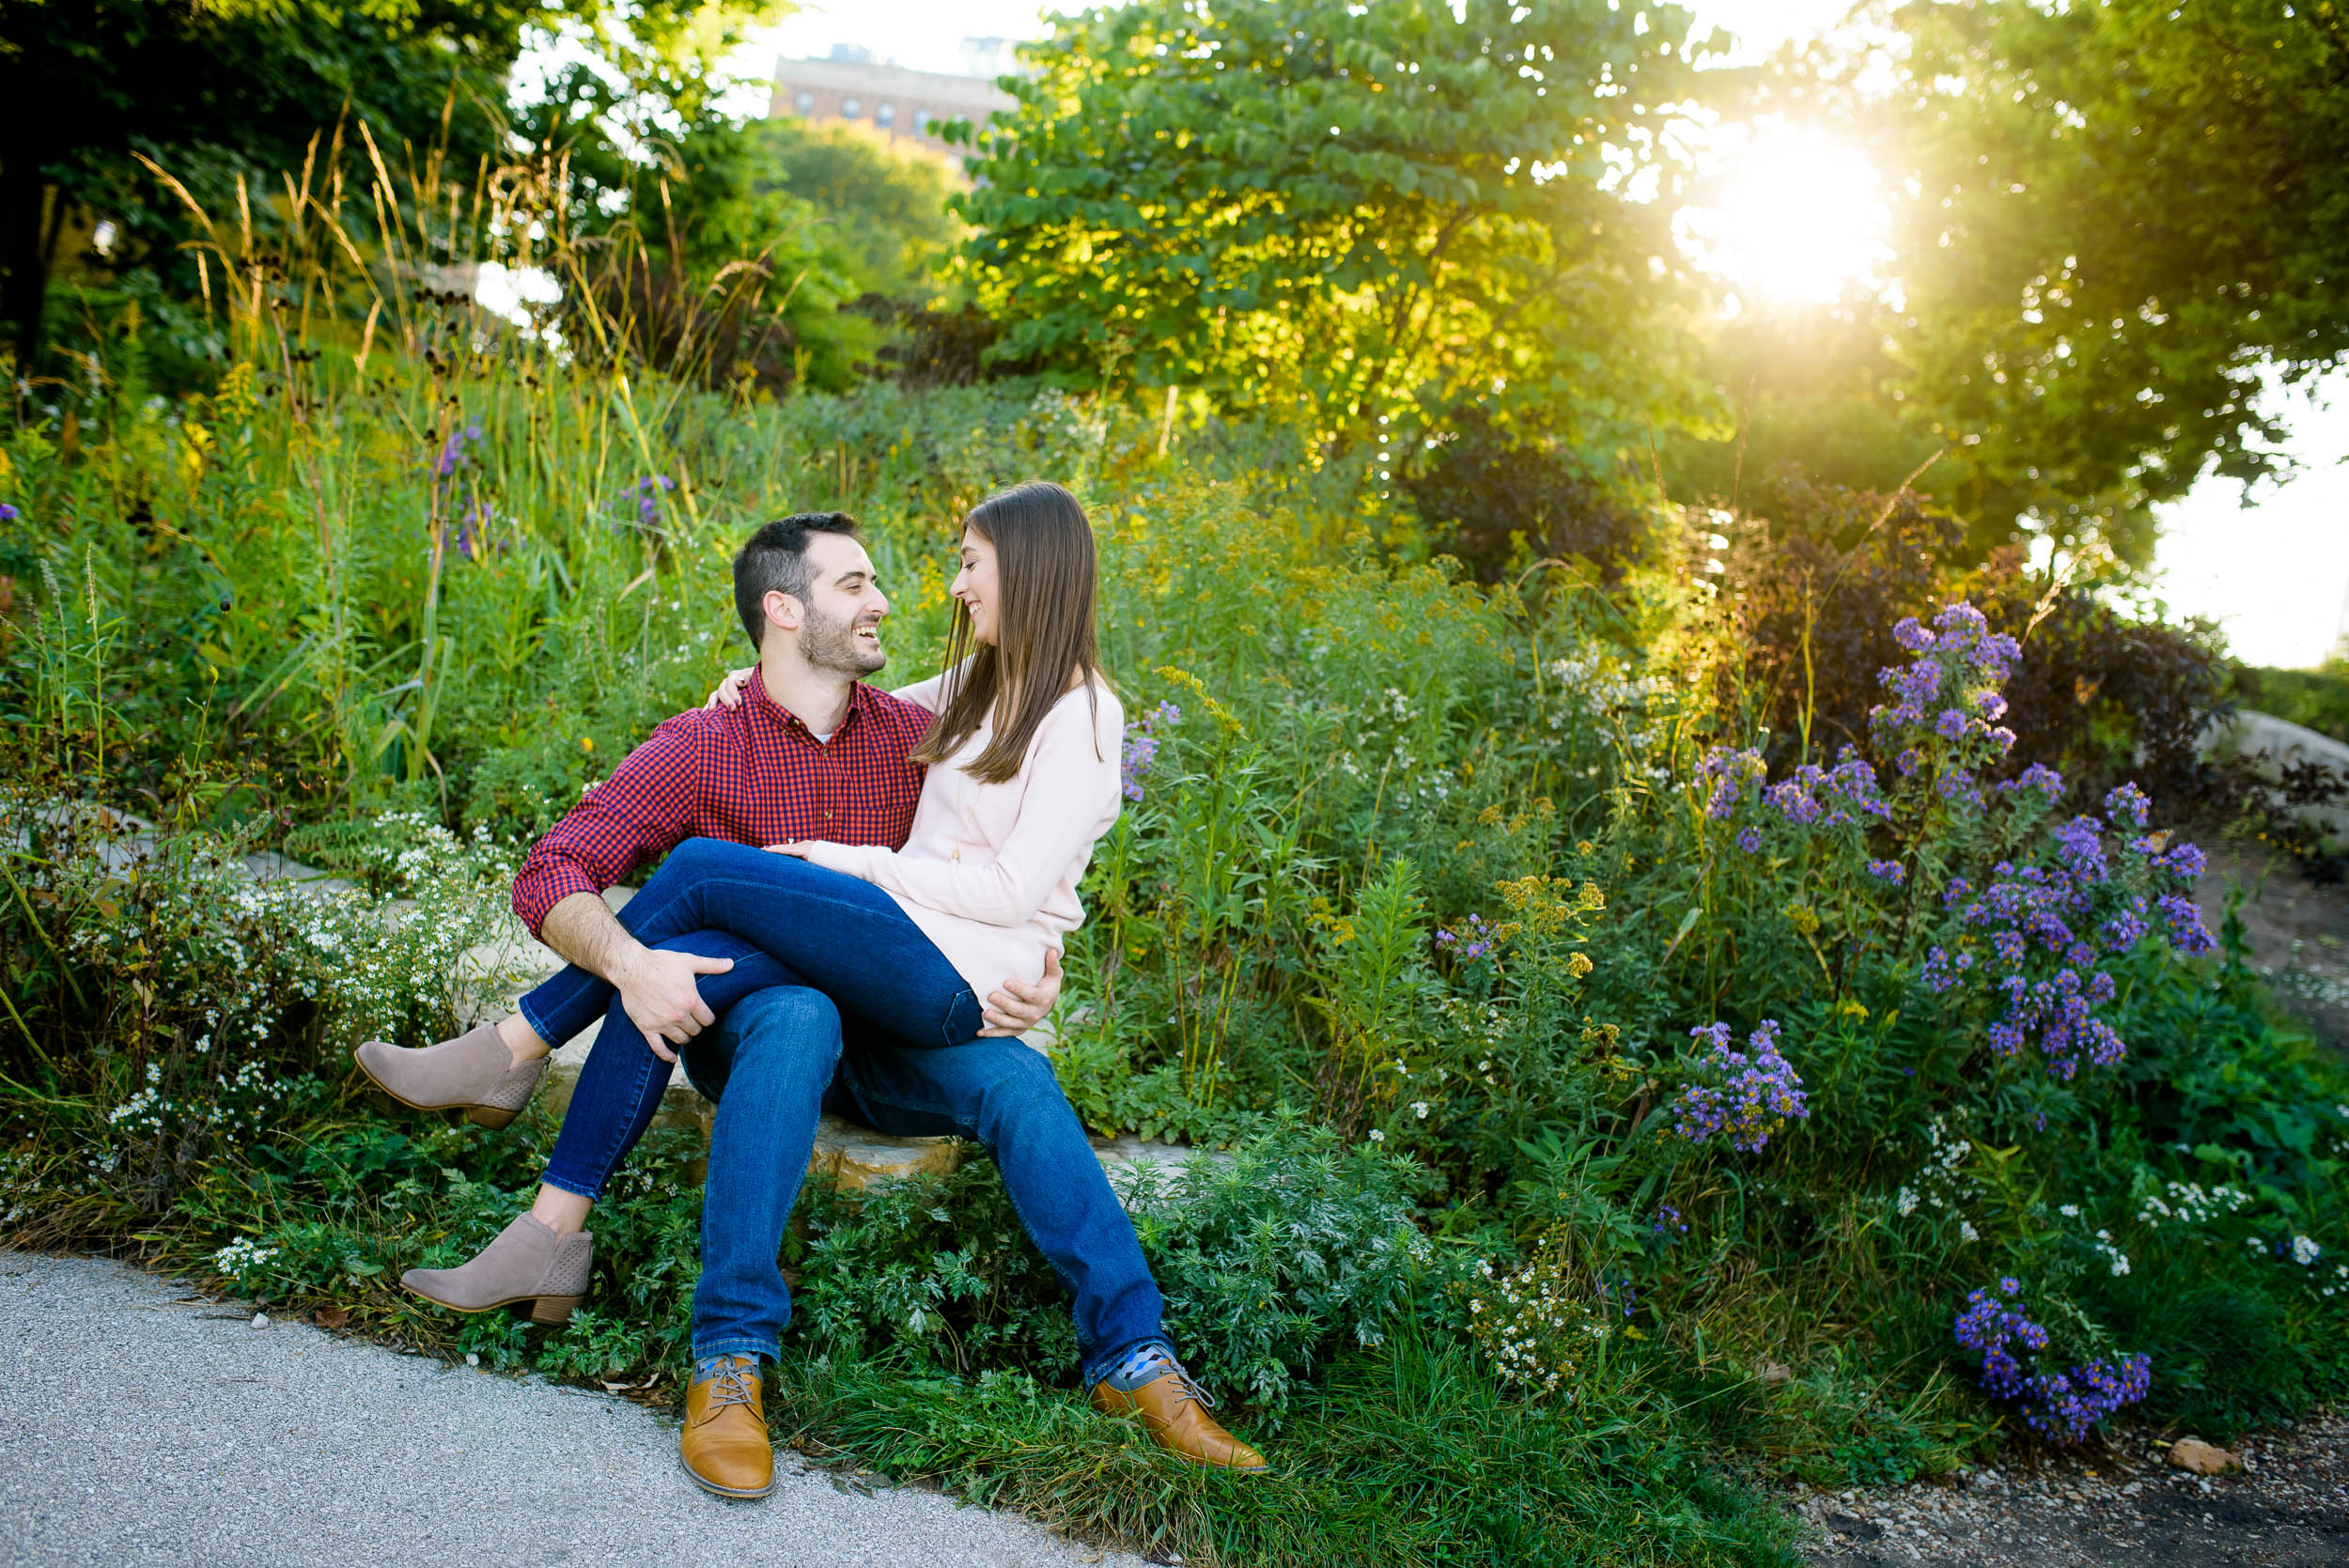 Copy of Lincoln Park Chicago engagement session captured by J. Brown Photography. See more engagement photo ideas at jbrownphotography.com!